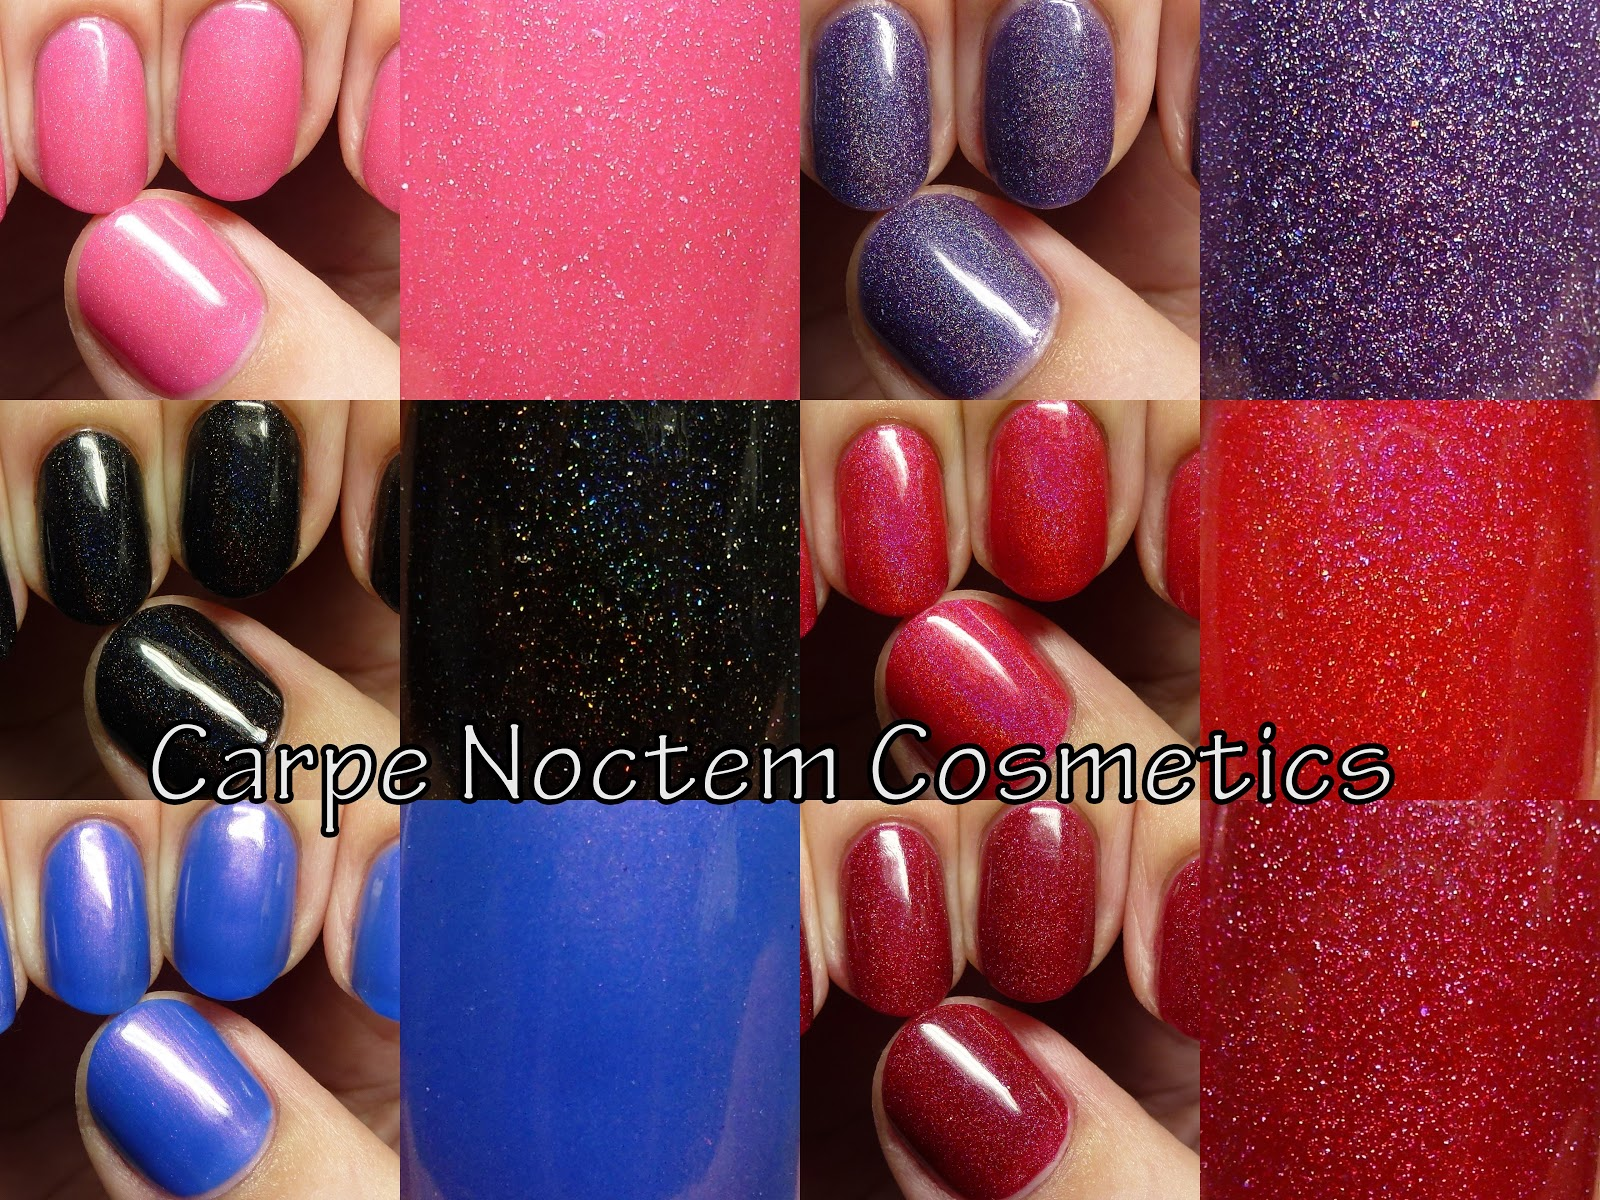 The Polished Hippy: Carpe Noctem Cosmetics swatches